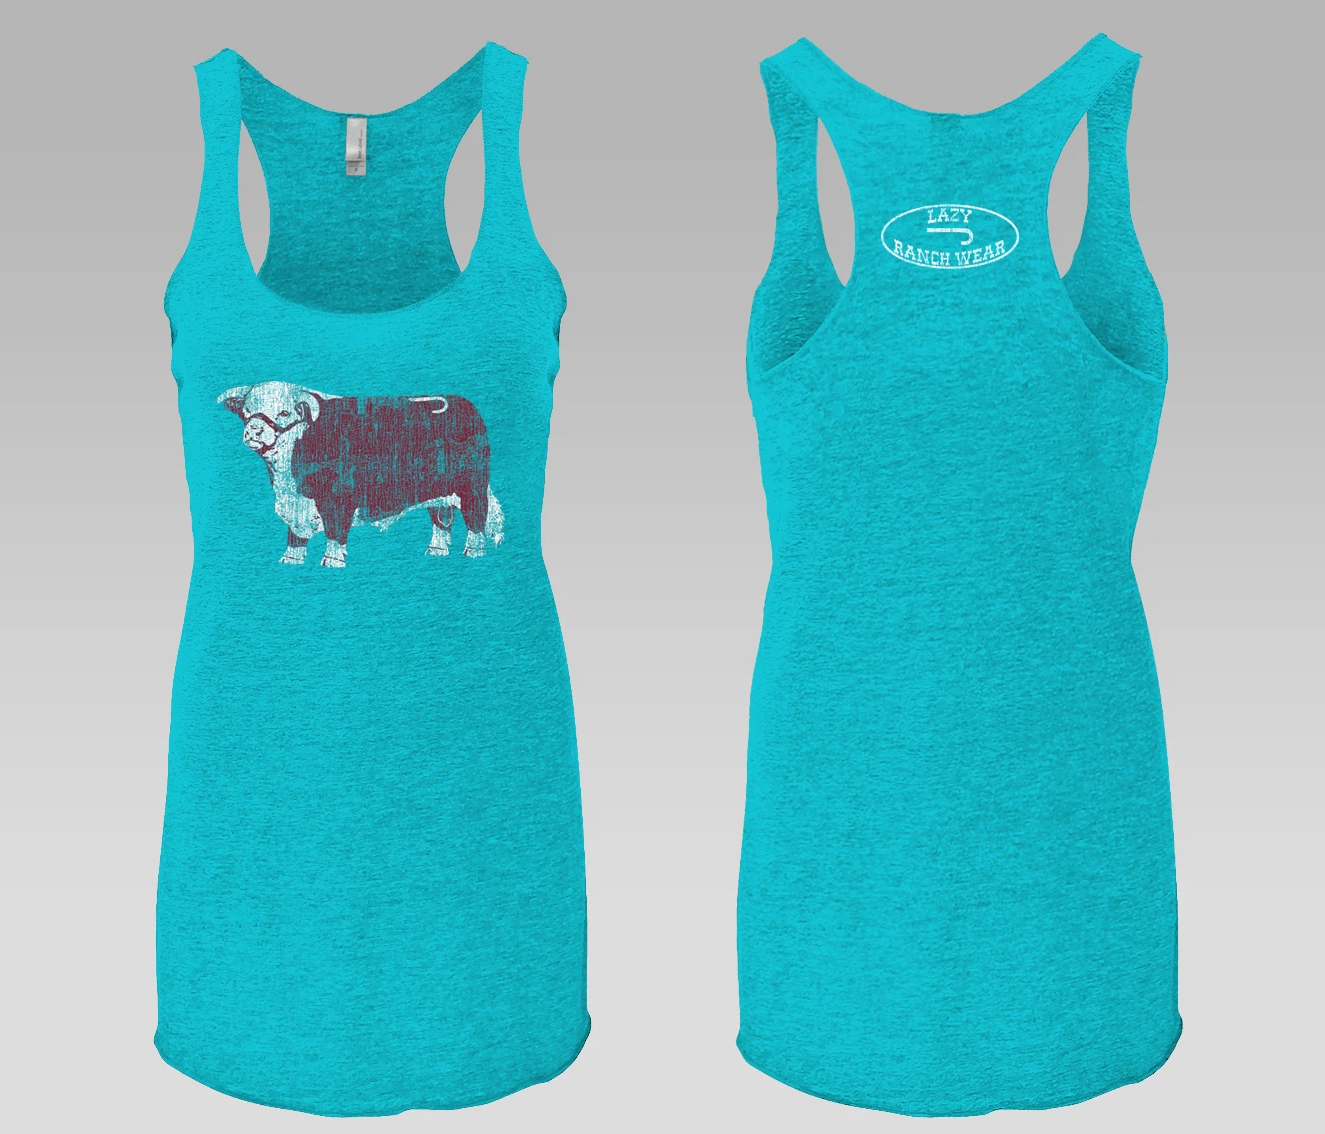 Lazy J Ranch Wear Turquoise Jughead Patch Tank